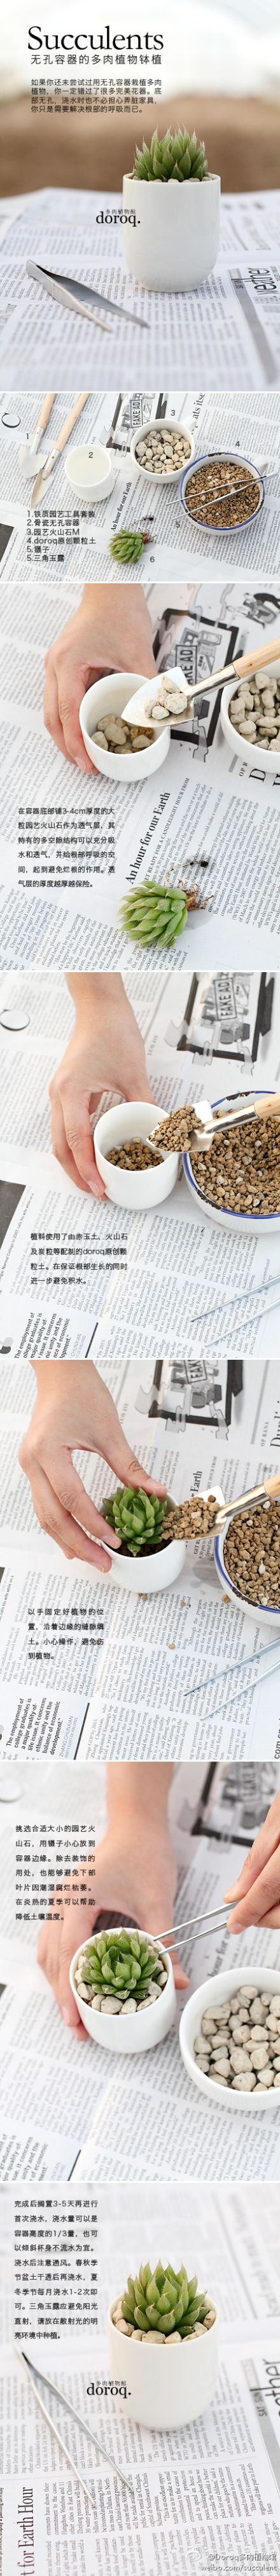 Succulent how to - in another language but its step by step pictures. 小小玉露